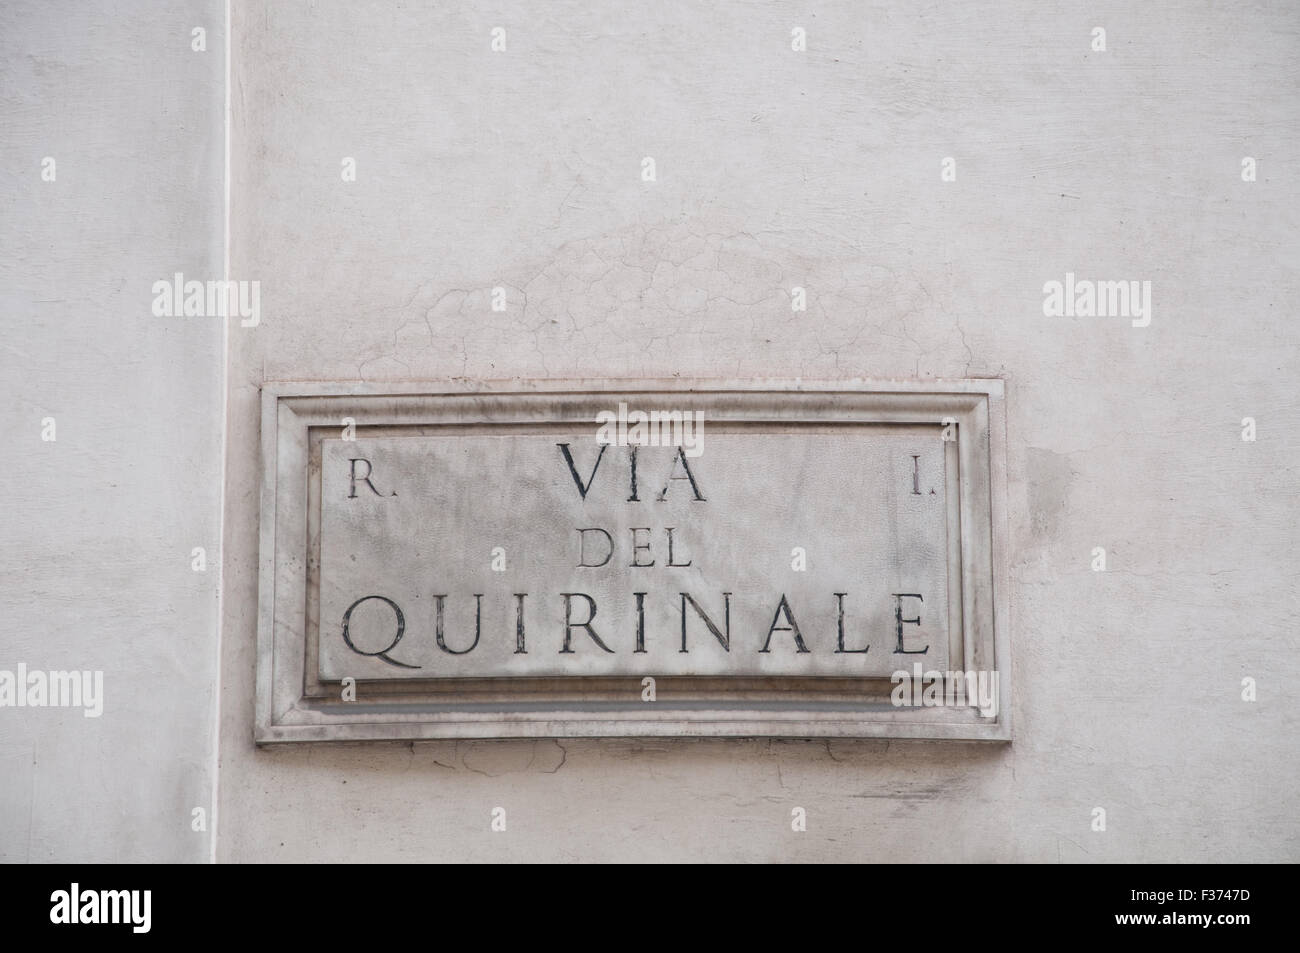 "Road sign indicating a street name in Italian ""piazza de quirinale"" in English means quirinale square Stock Photo"